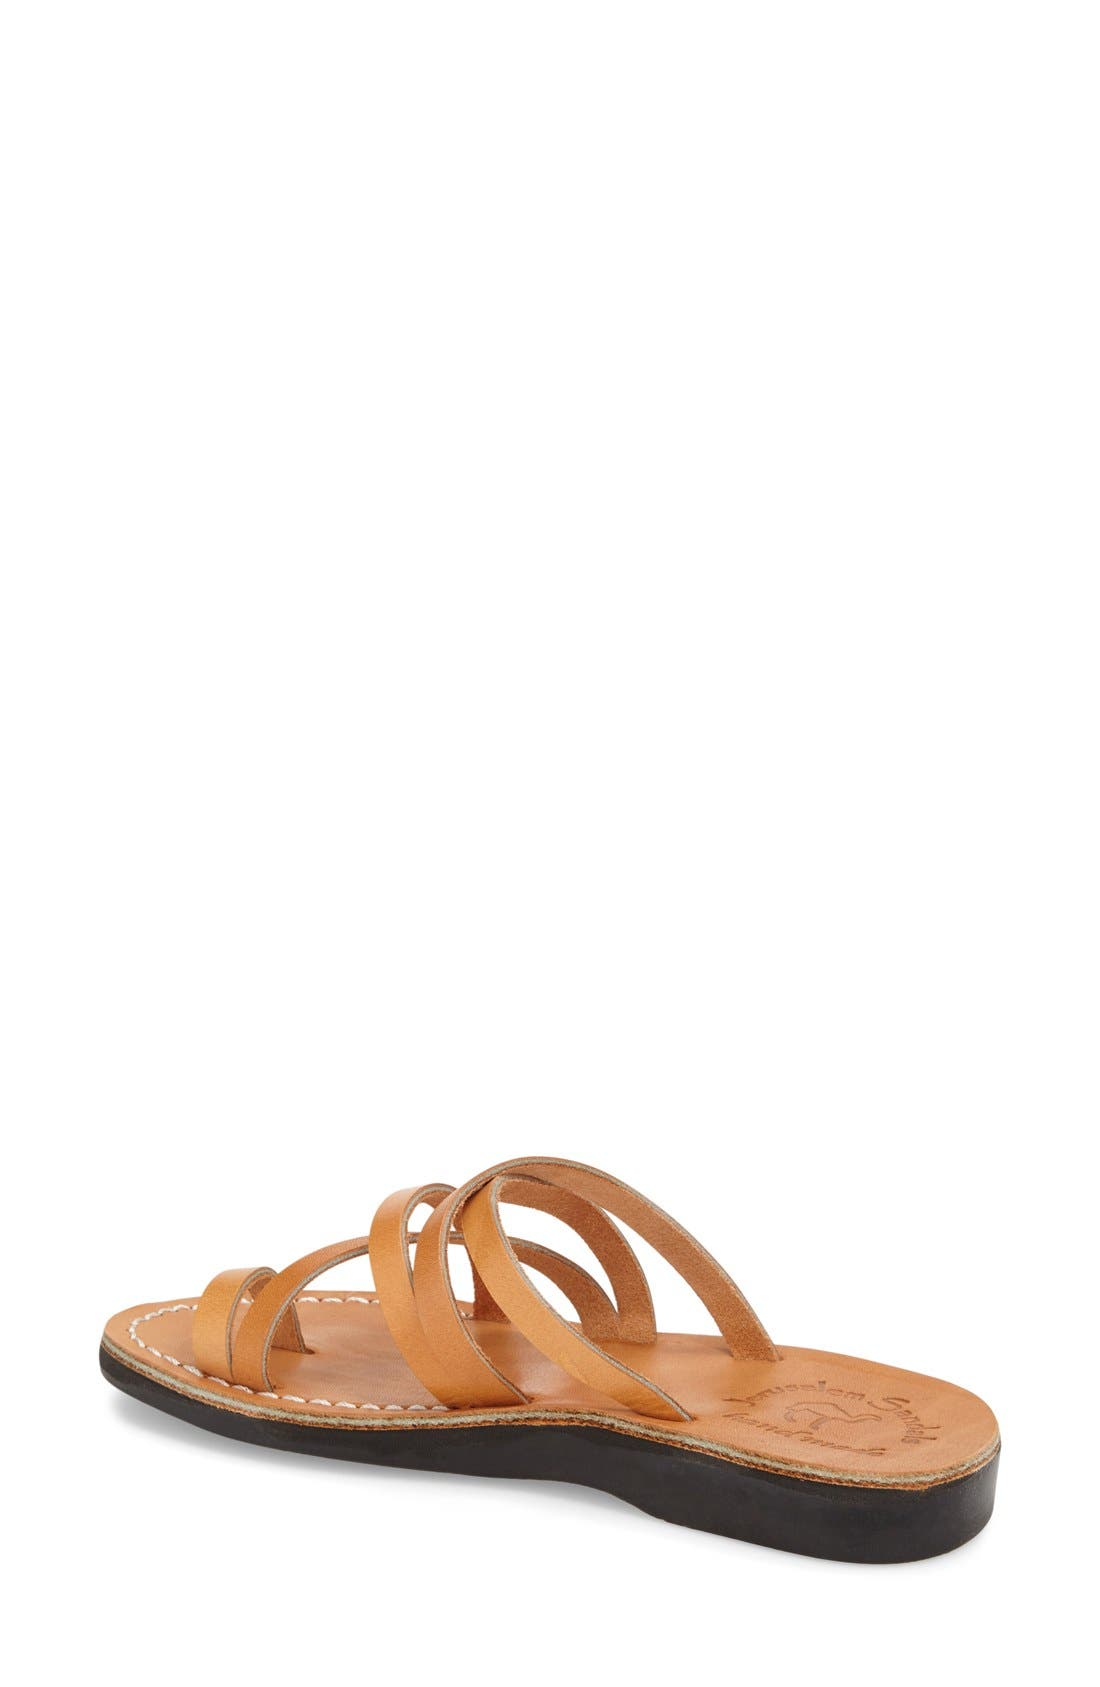 Alternate Image 2  - Jerusalem Sandals 'Ariel' Strappy Slide Sandal (Women)